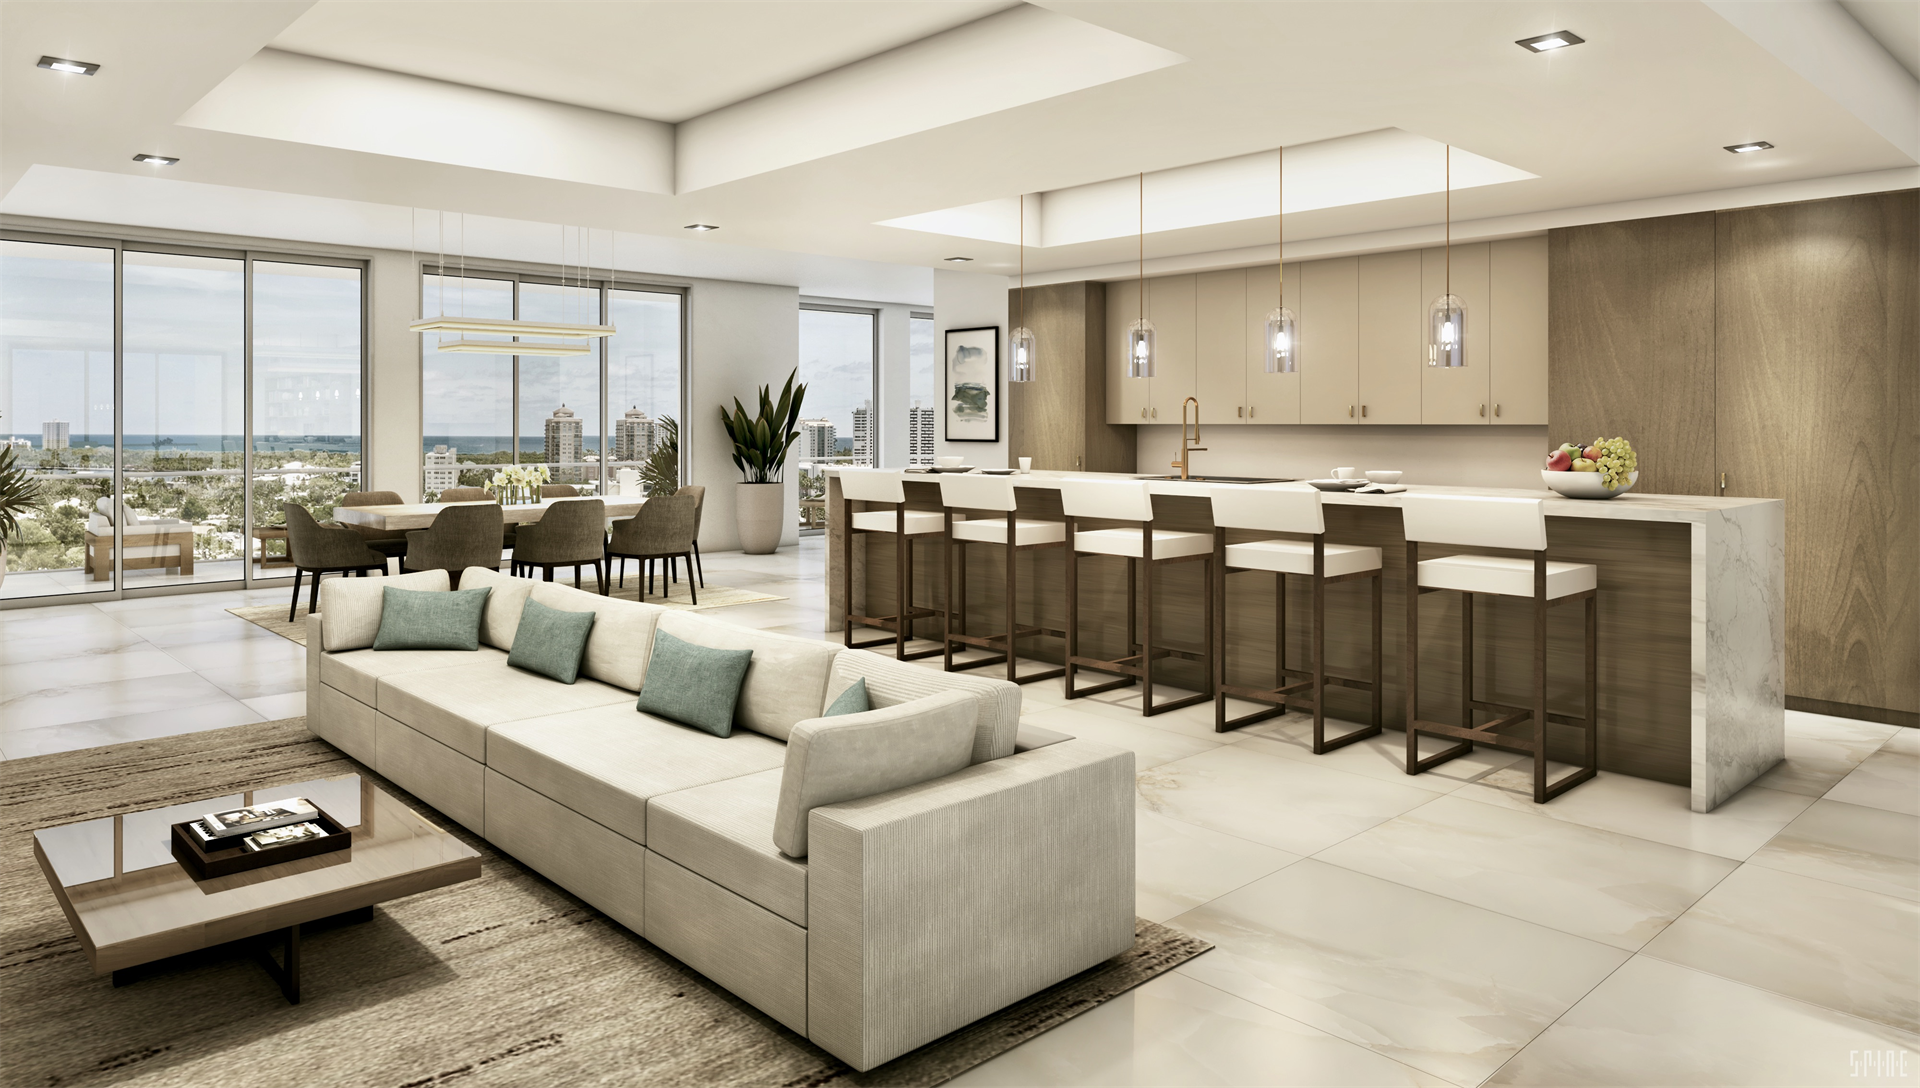 35. Riva Residences Fort Lauderdale building at 1180 North Federal Highway, Fort Lauderdale, FL 33304